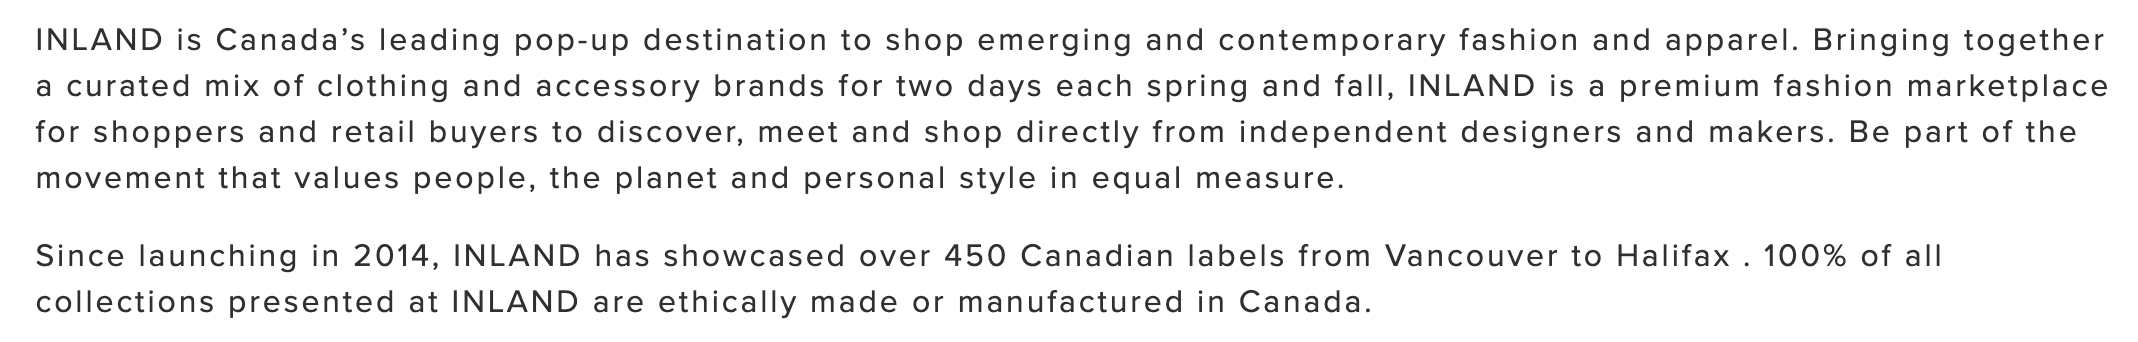 Inland, Pop Up, Canadian Fashion Retail Experience